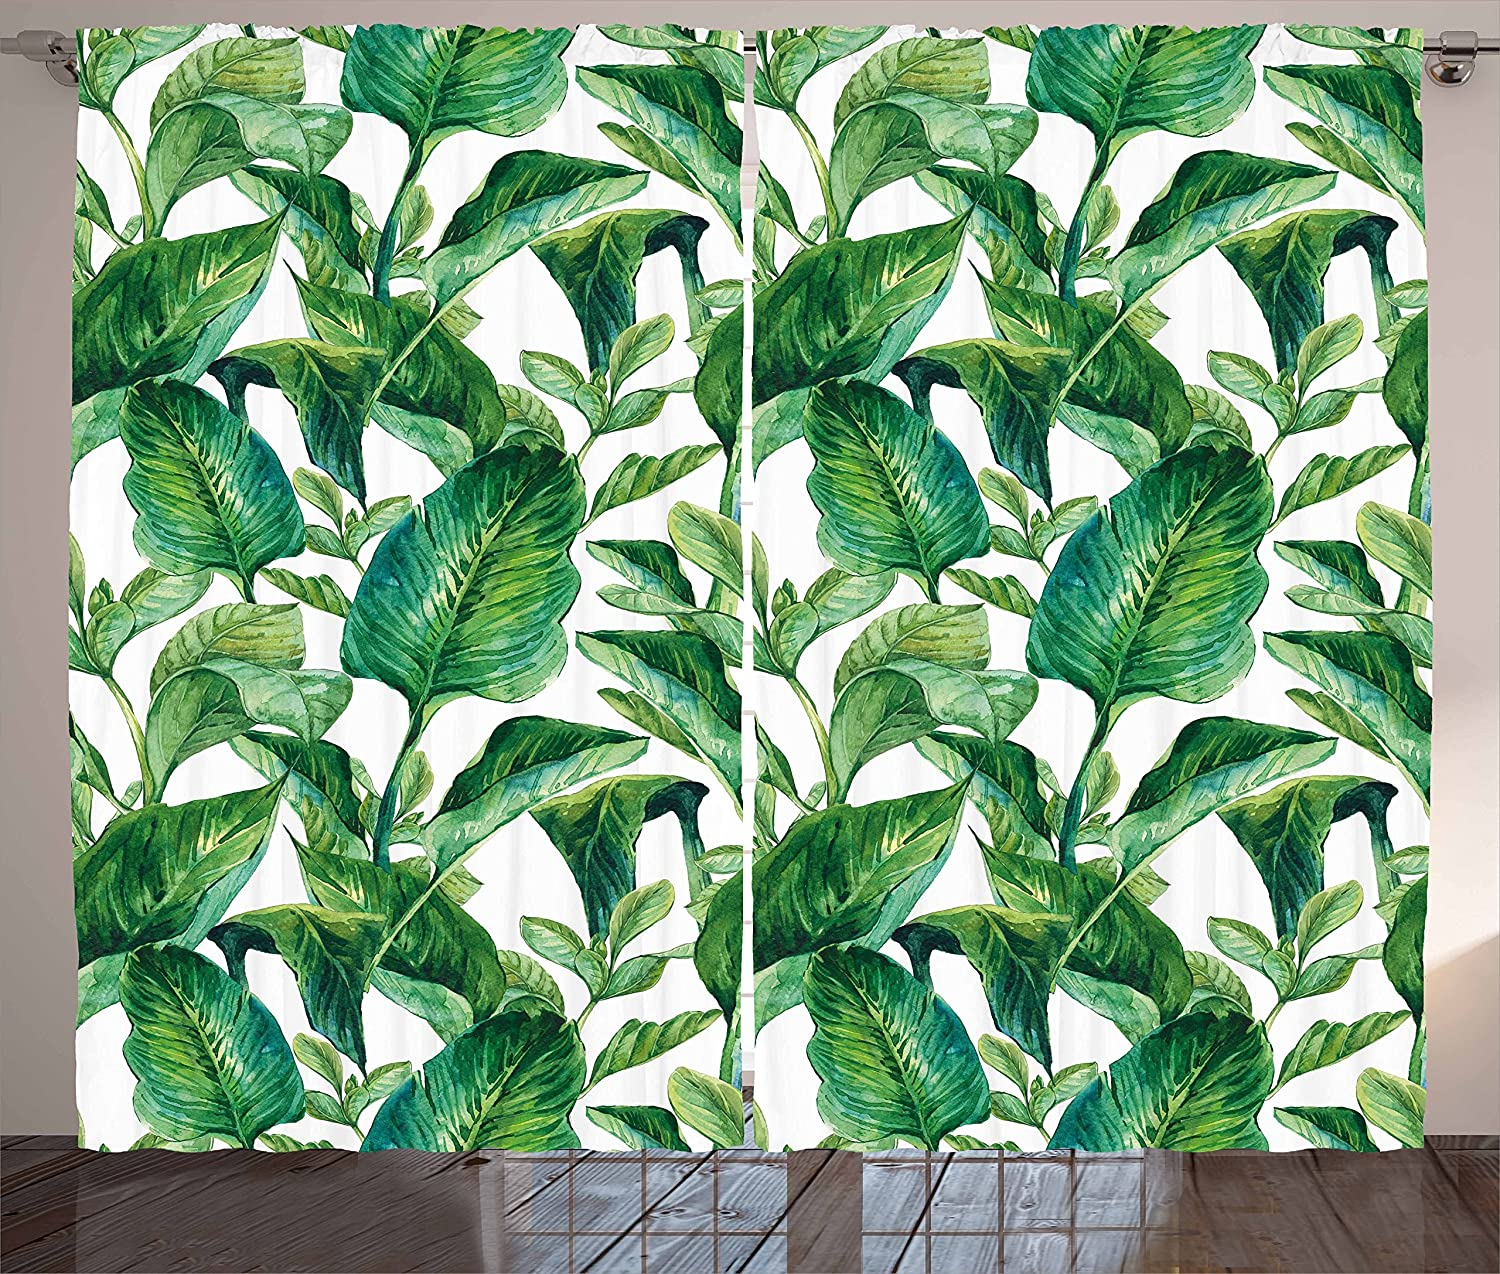 """Ambesonne Leaf Curtains, Romantic Holiday Island Hawaiian Banana Trees Watercolored Image, Living Room Bedroom Window Drapes 2 Panel Set, 108"""" X 90"""", Forest Green"""